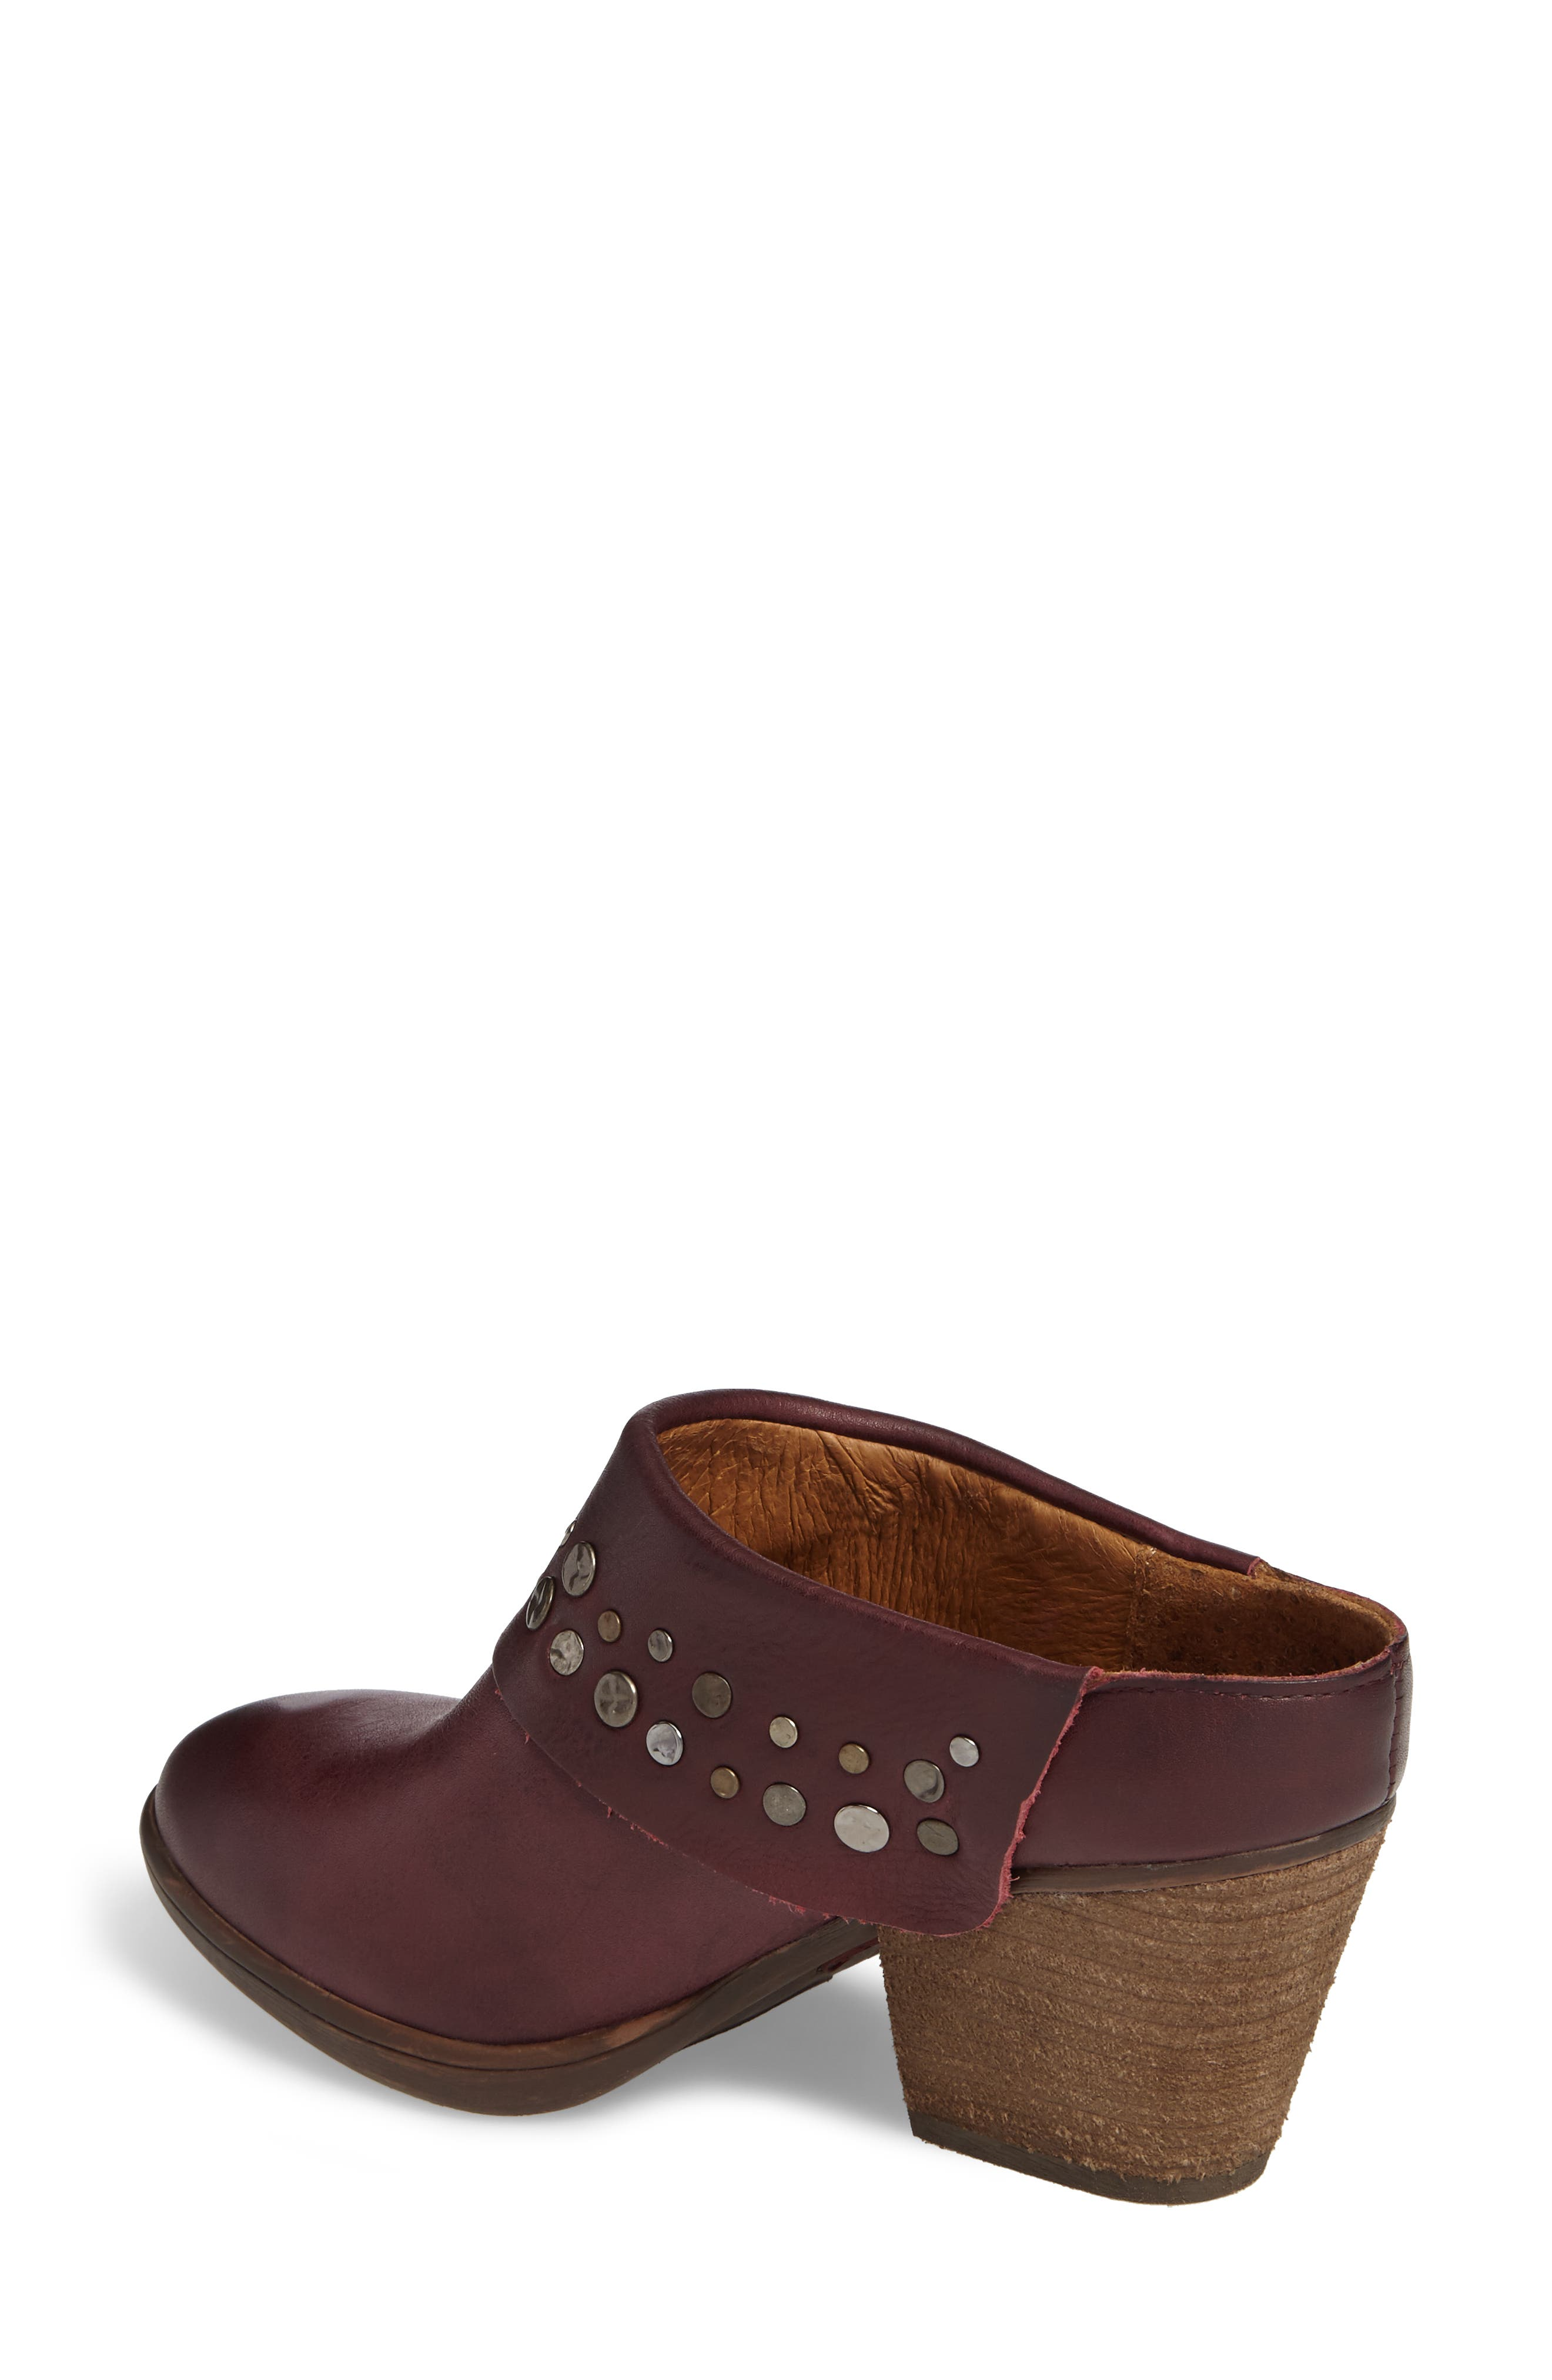 Gila Studded Mule,                             Alternate thumbnail 2, color,                             Marsala Red Leather